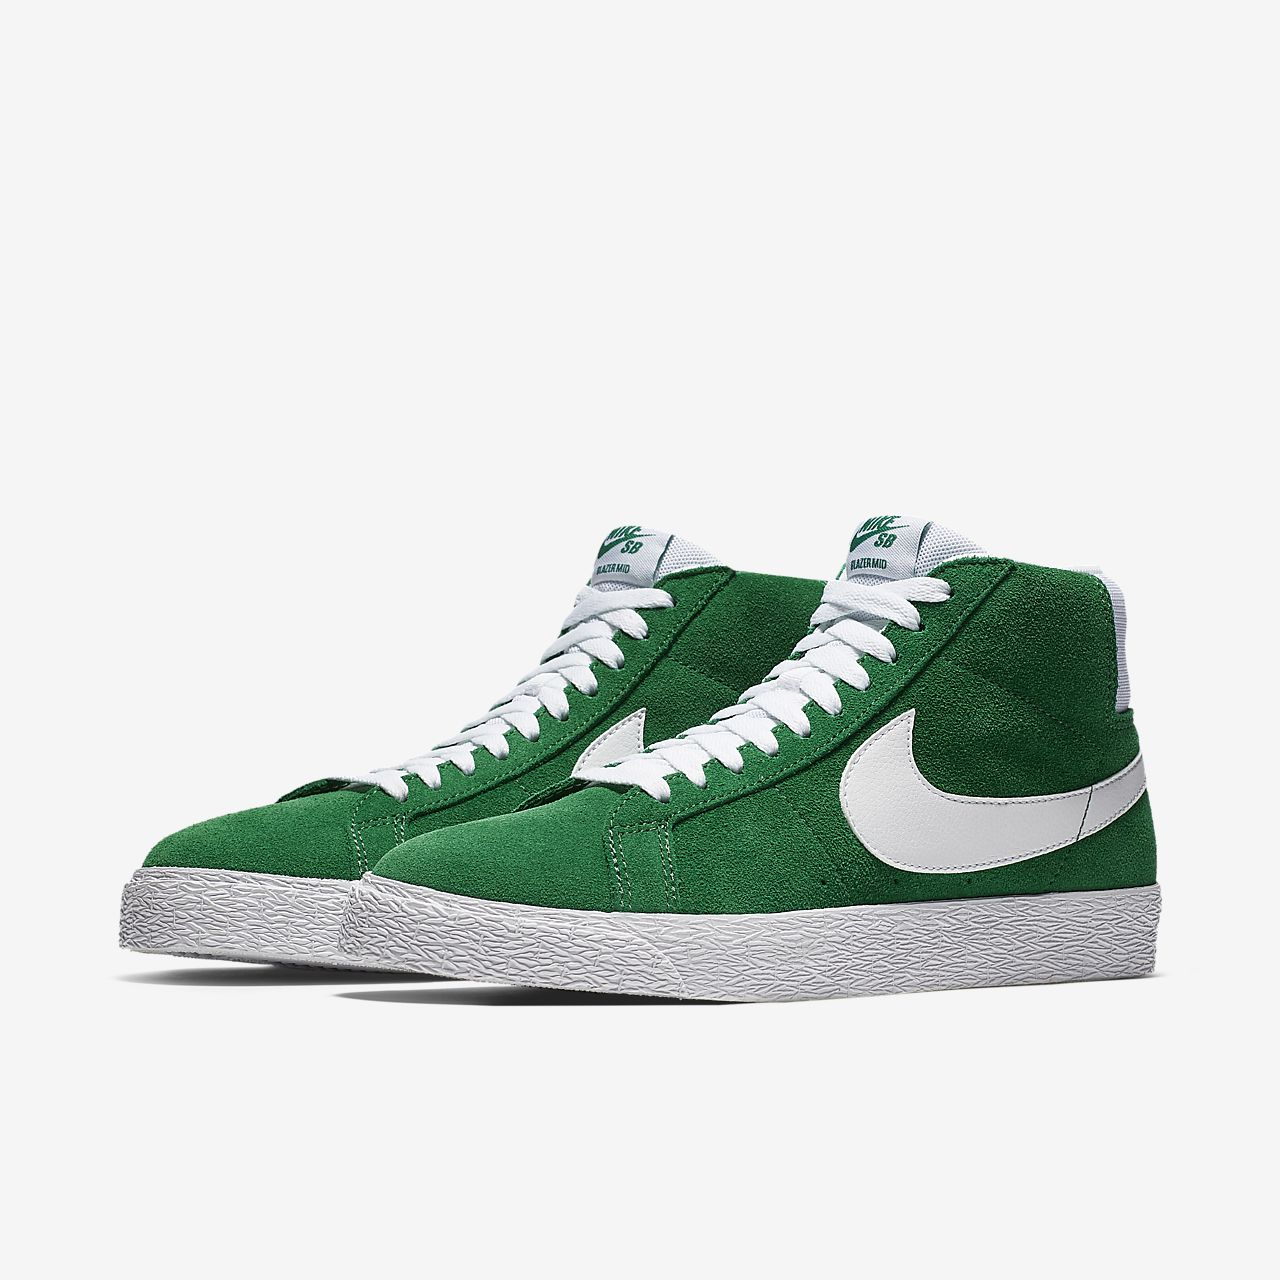 Nike SB Zoom Blazer Mid Men's Skateboarding Shoes Green/White sD1554E